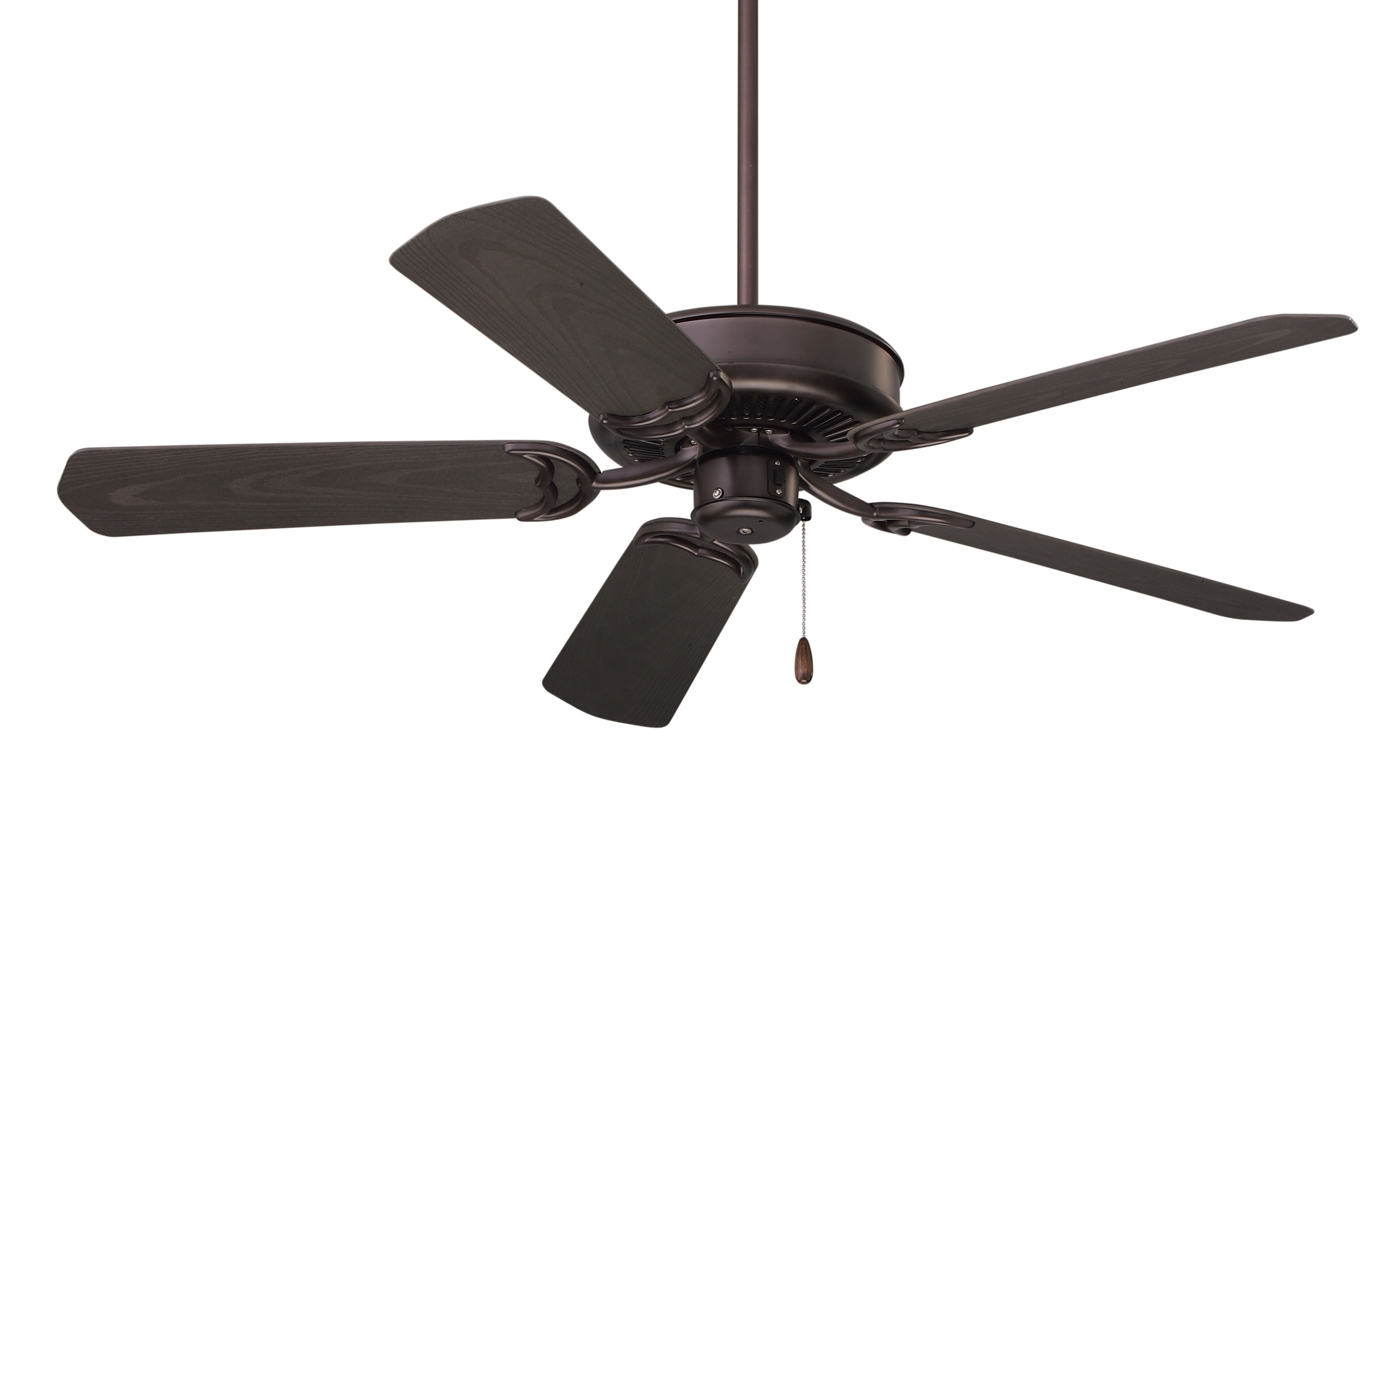 Best And Newest Ceiling Fan: Cool Emerson Ceiling Fans Design Emerson Ceiling Fans For Outdoor Electric Ceiling Fans (View 1 of 20)